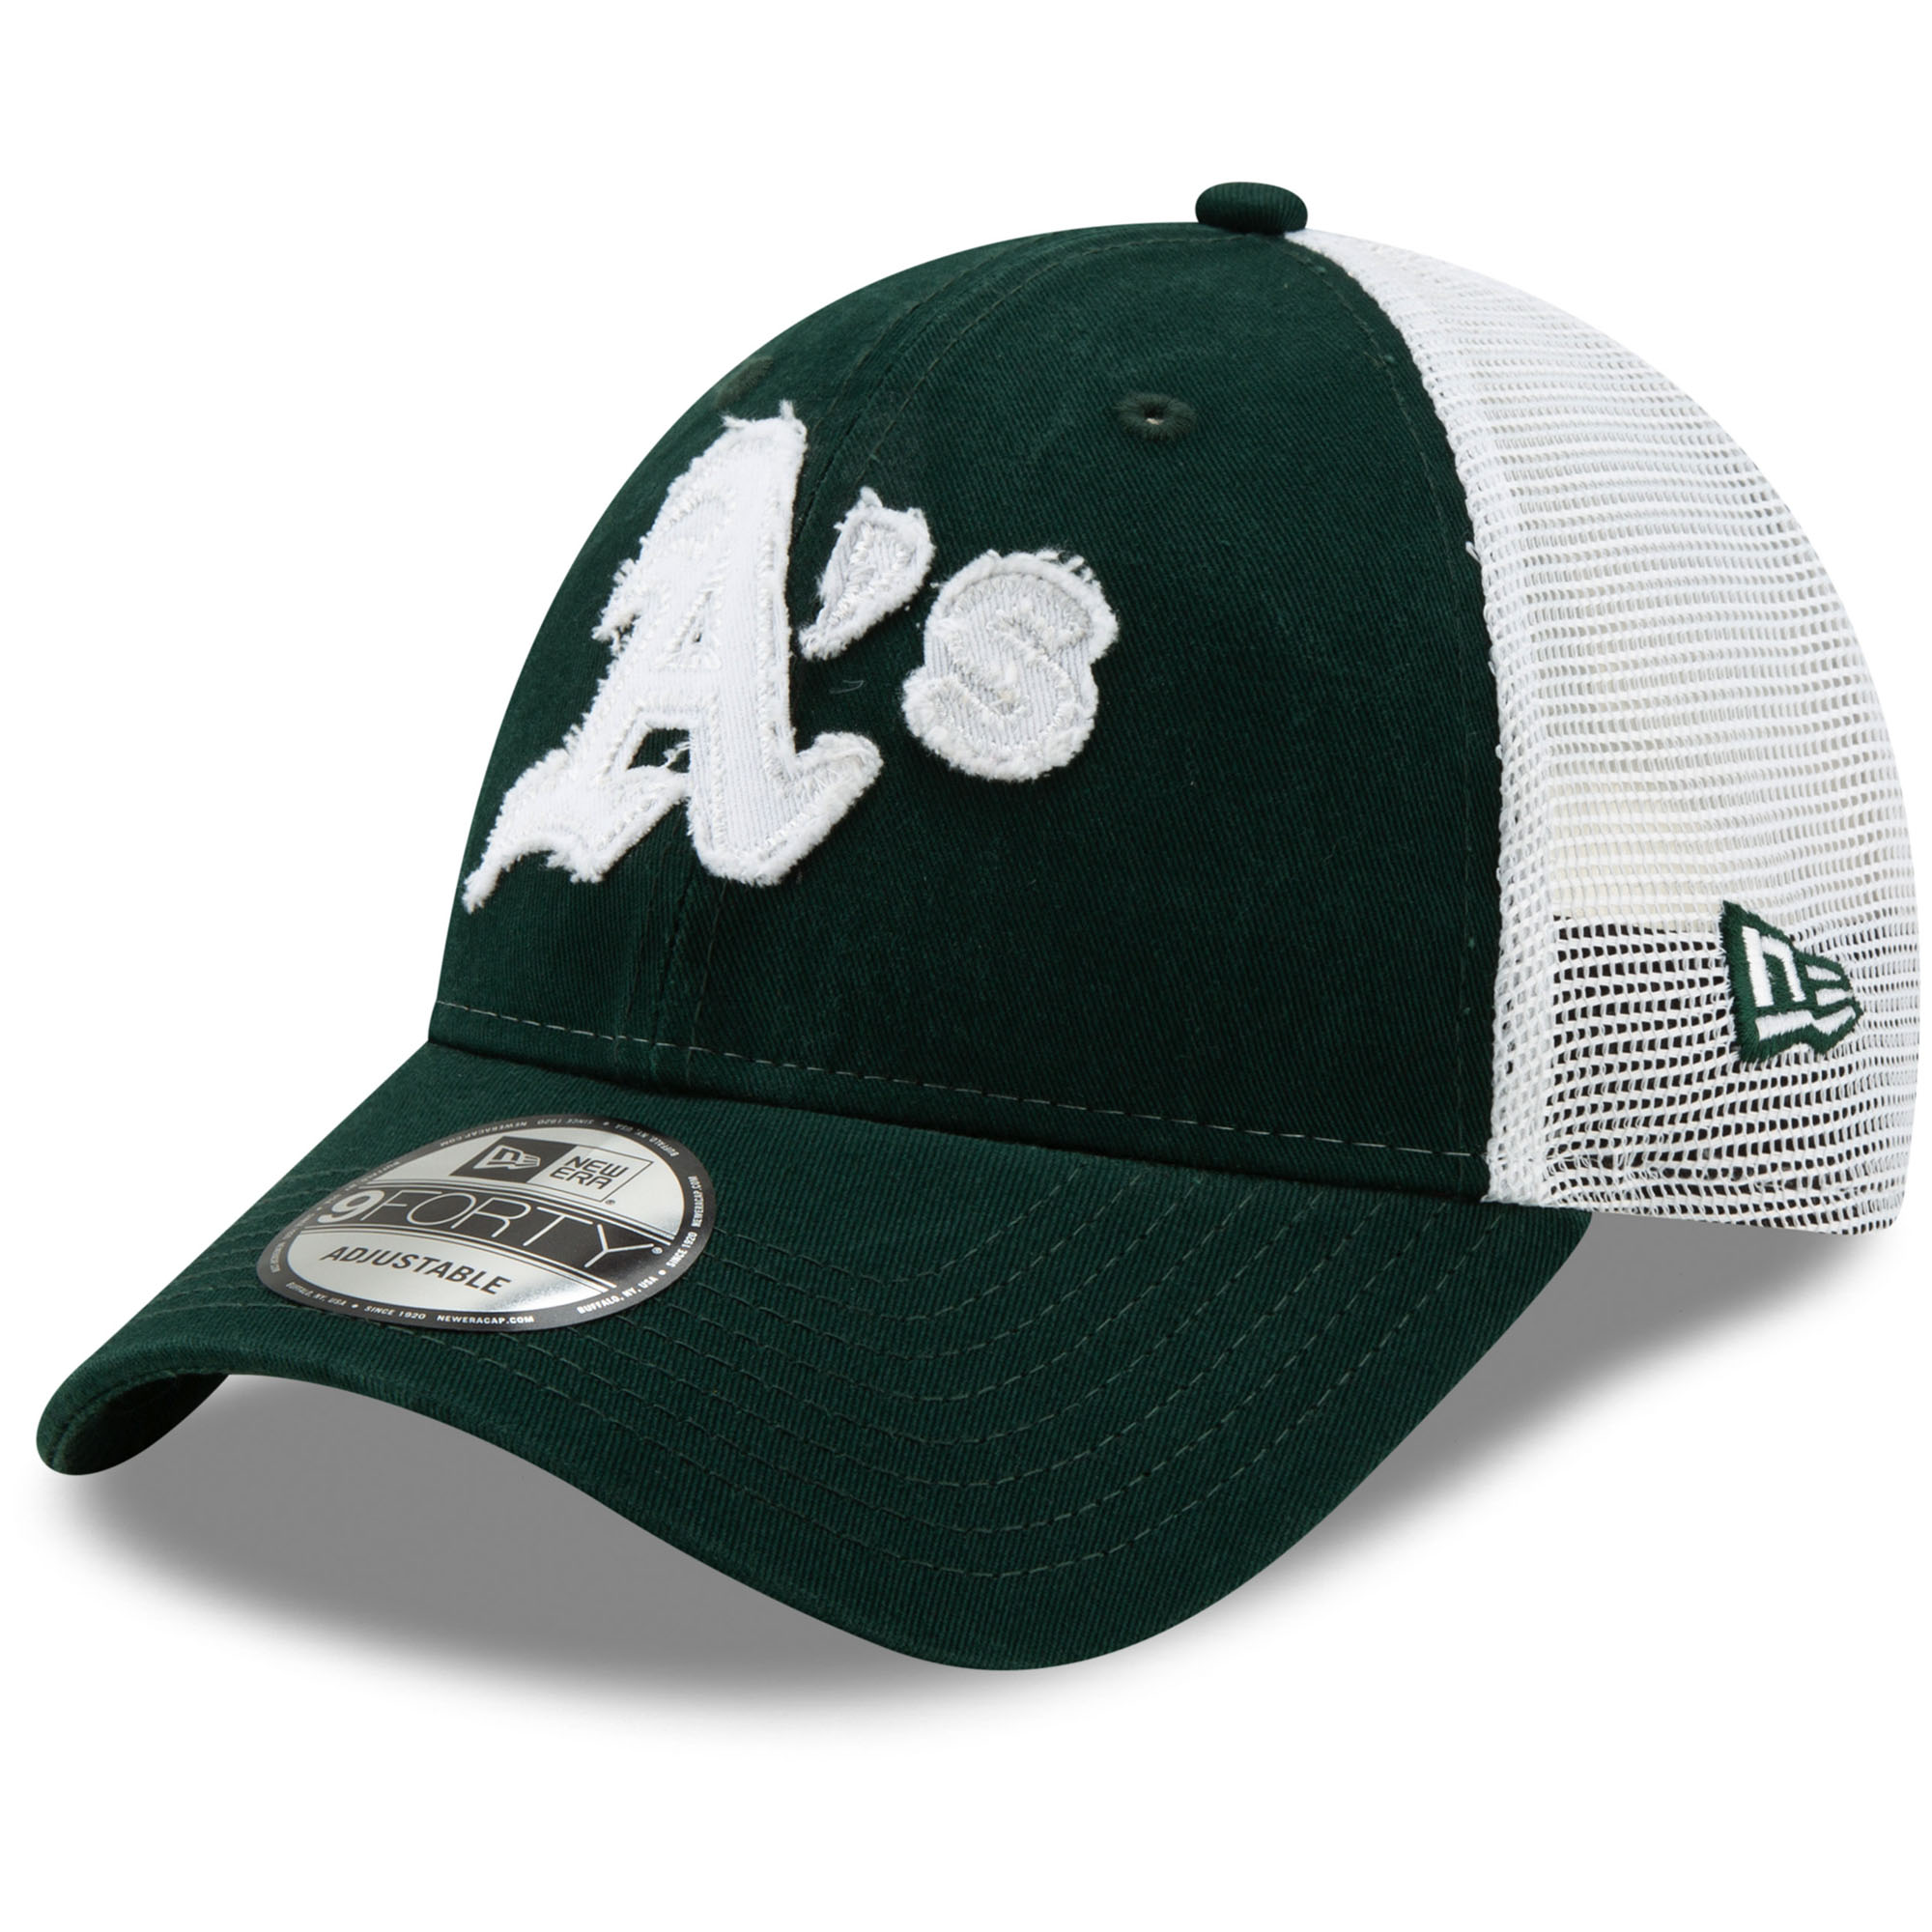 Oakland Athletics New Era Team Truckered 9FORTY Adjustable Hat - Green/White - OSFA